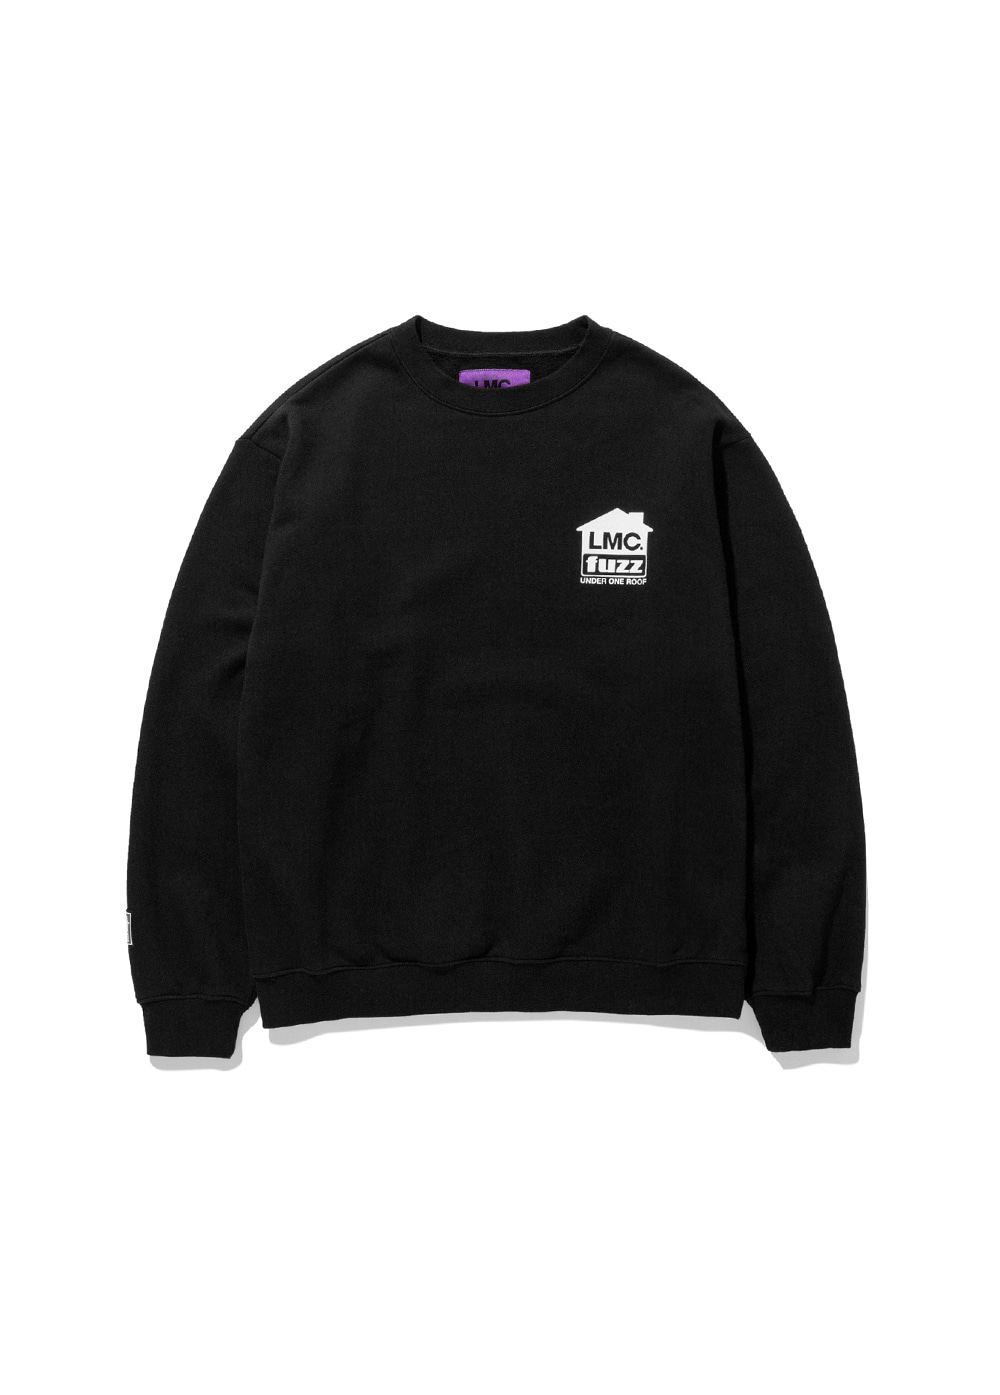 LMC x FUZZ HOUSE SWEATSHIRT black